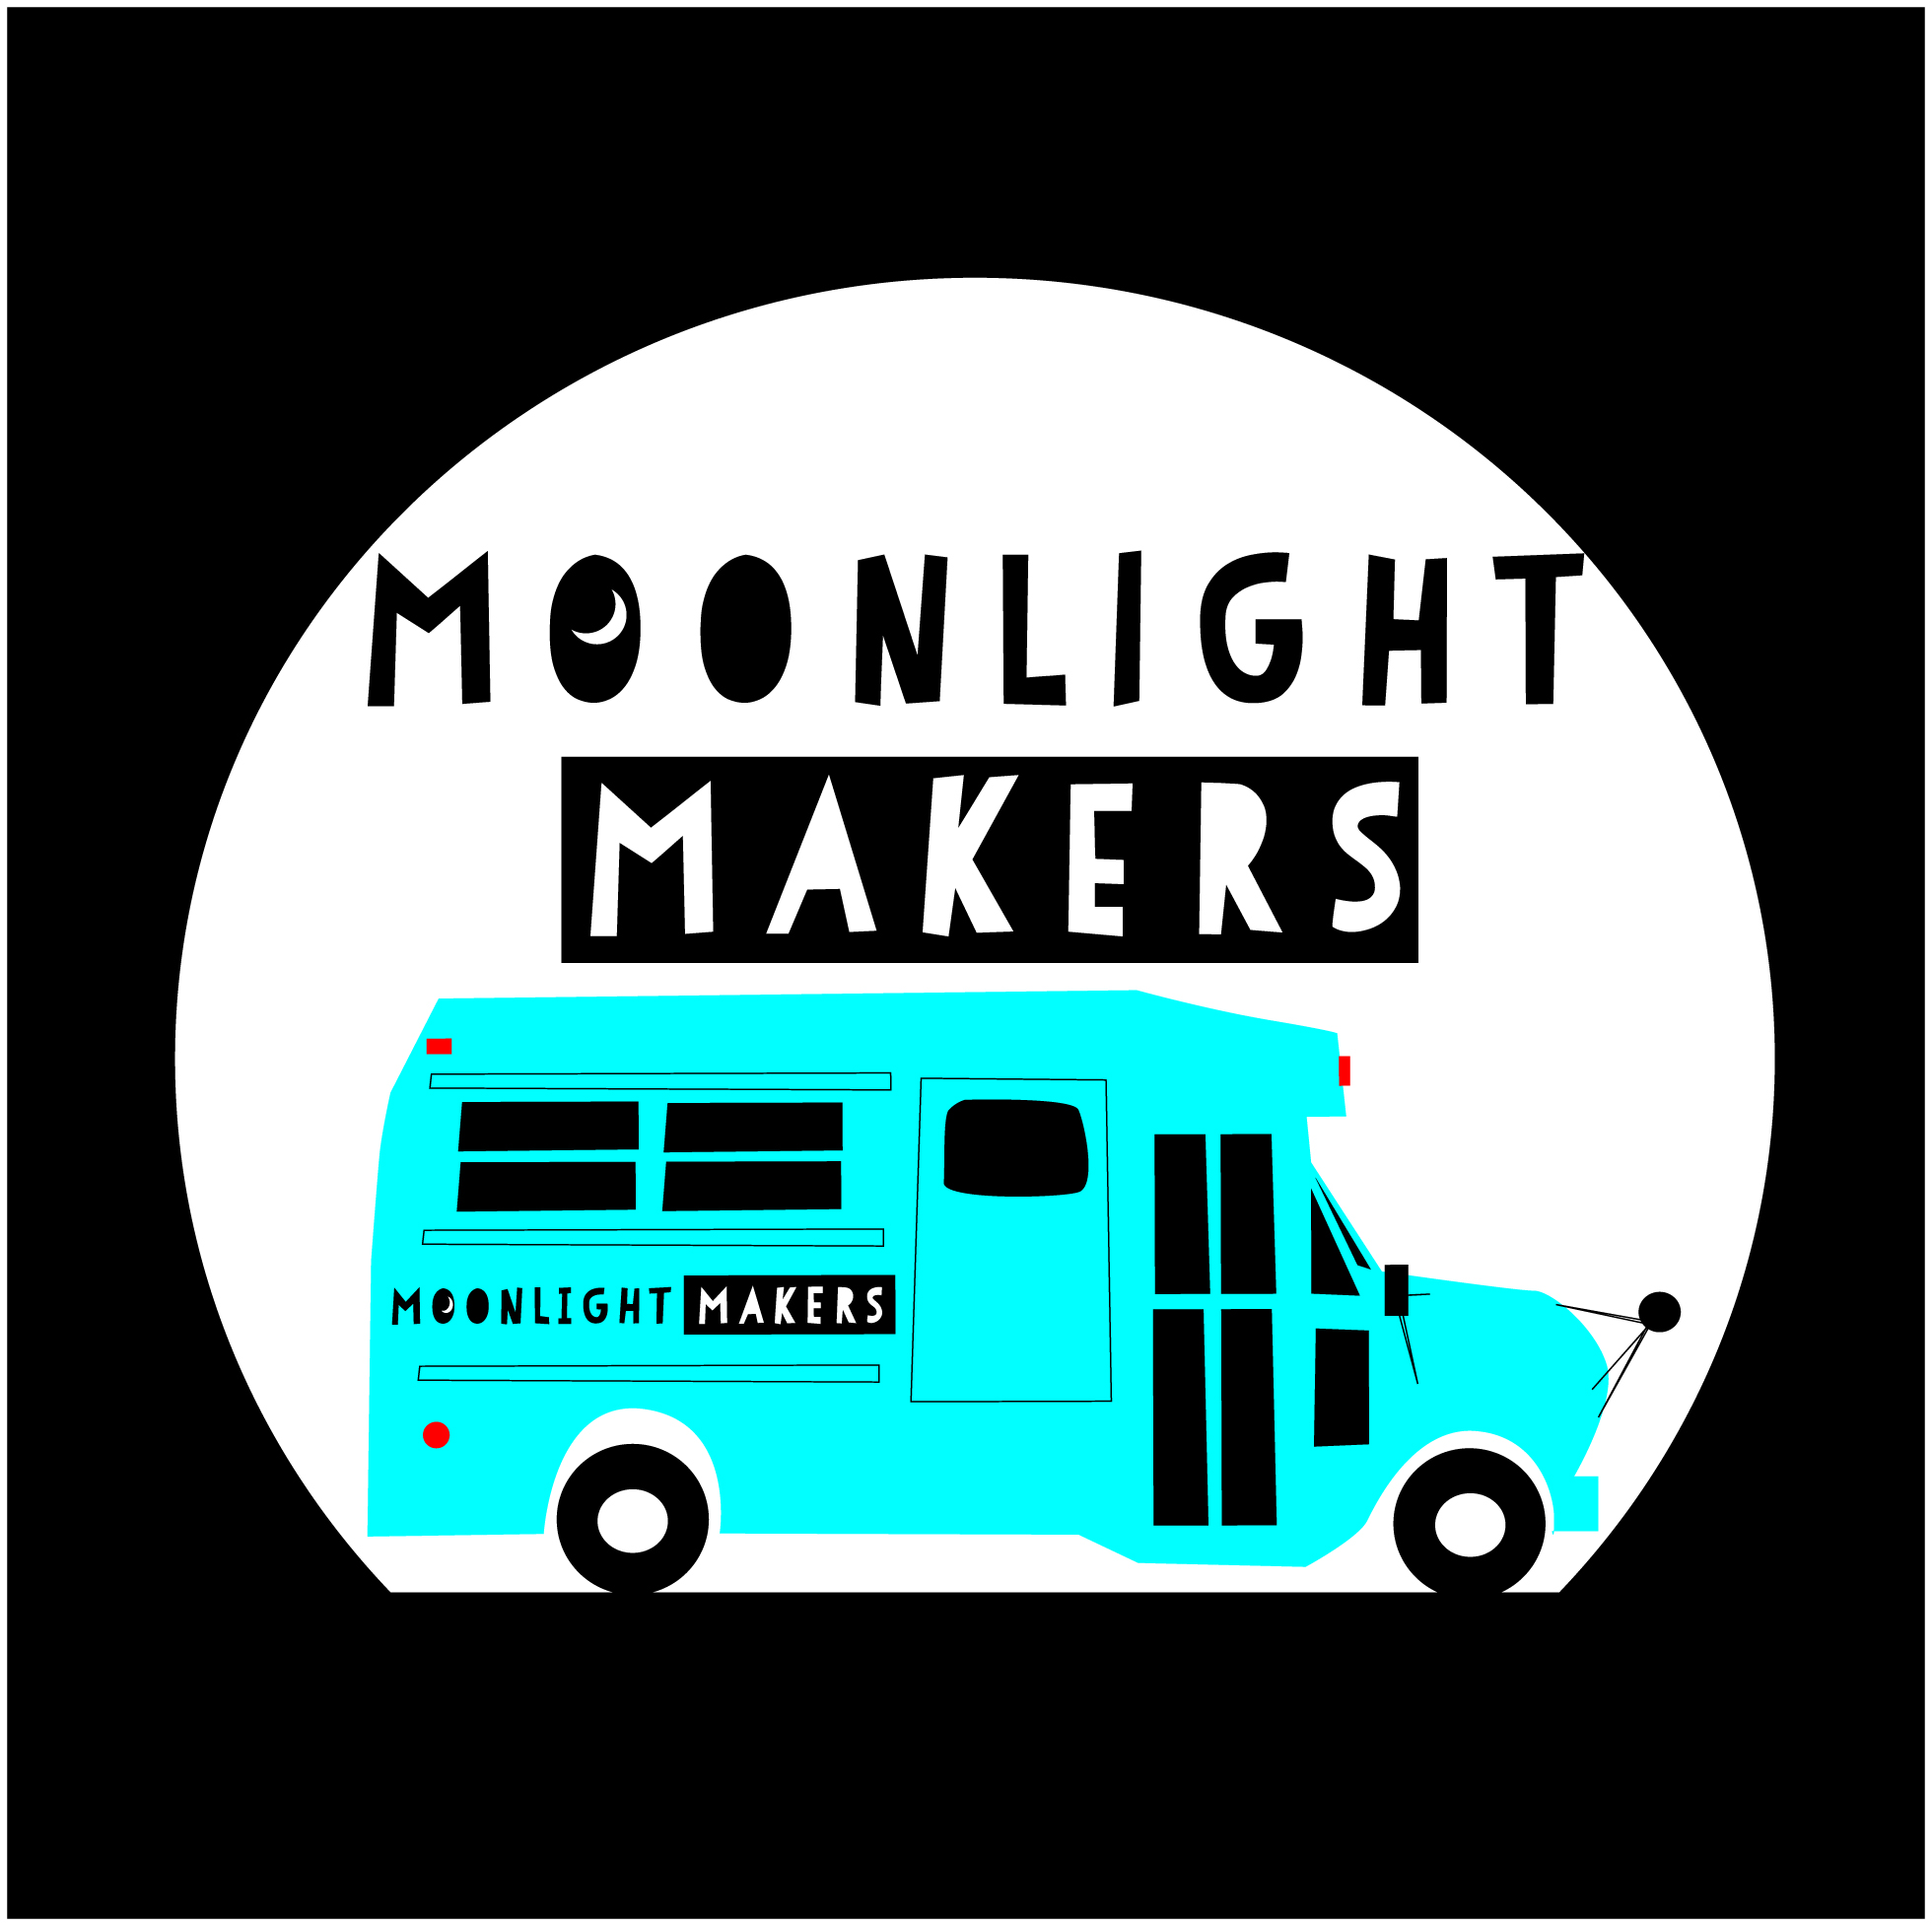 Moonlight Makers 2016 Logo